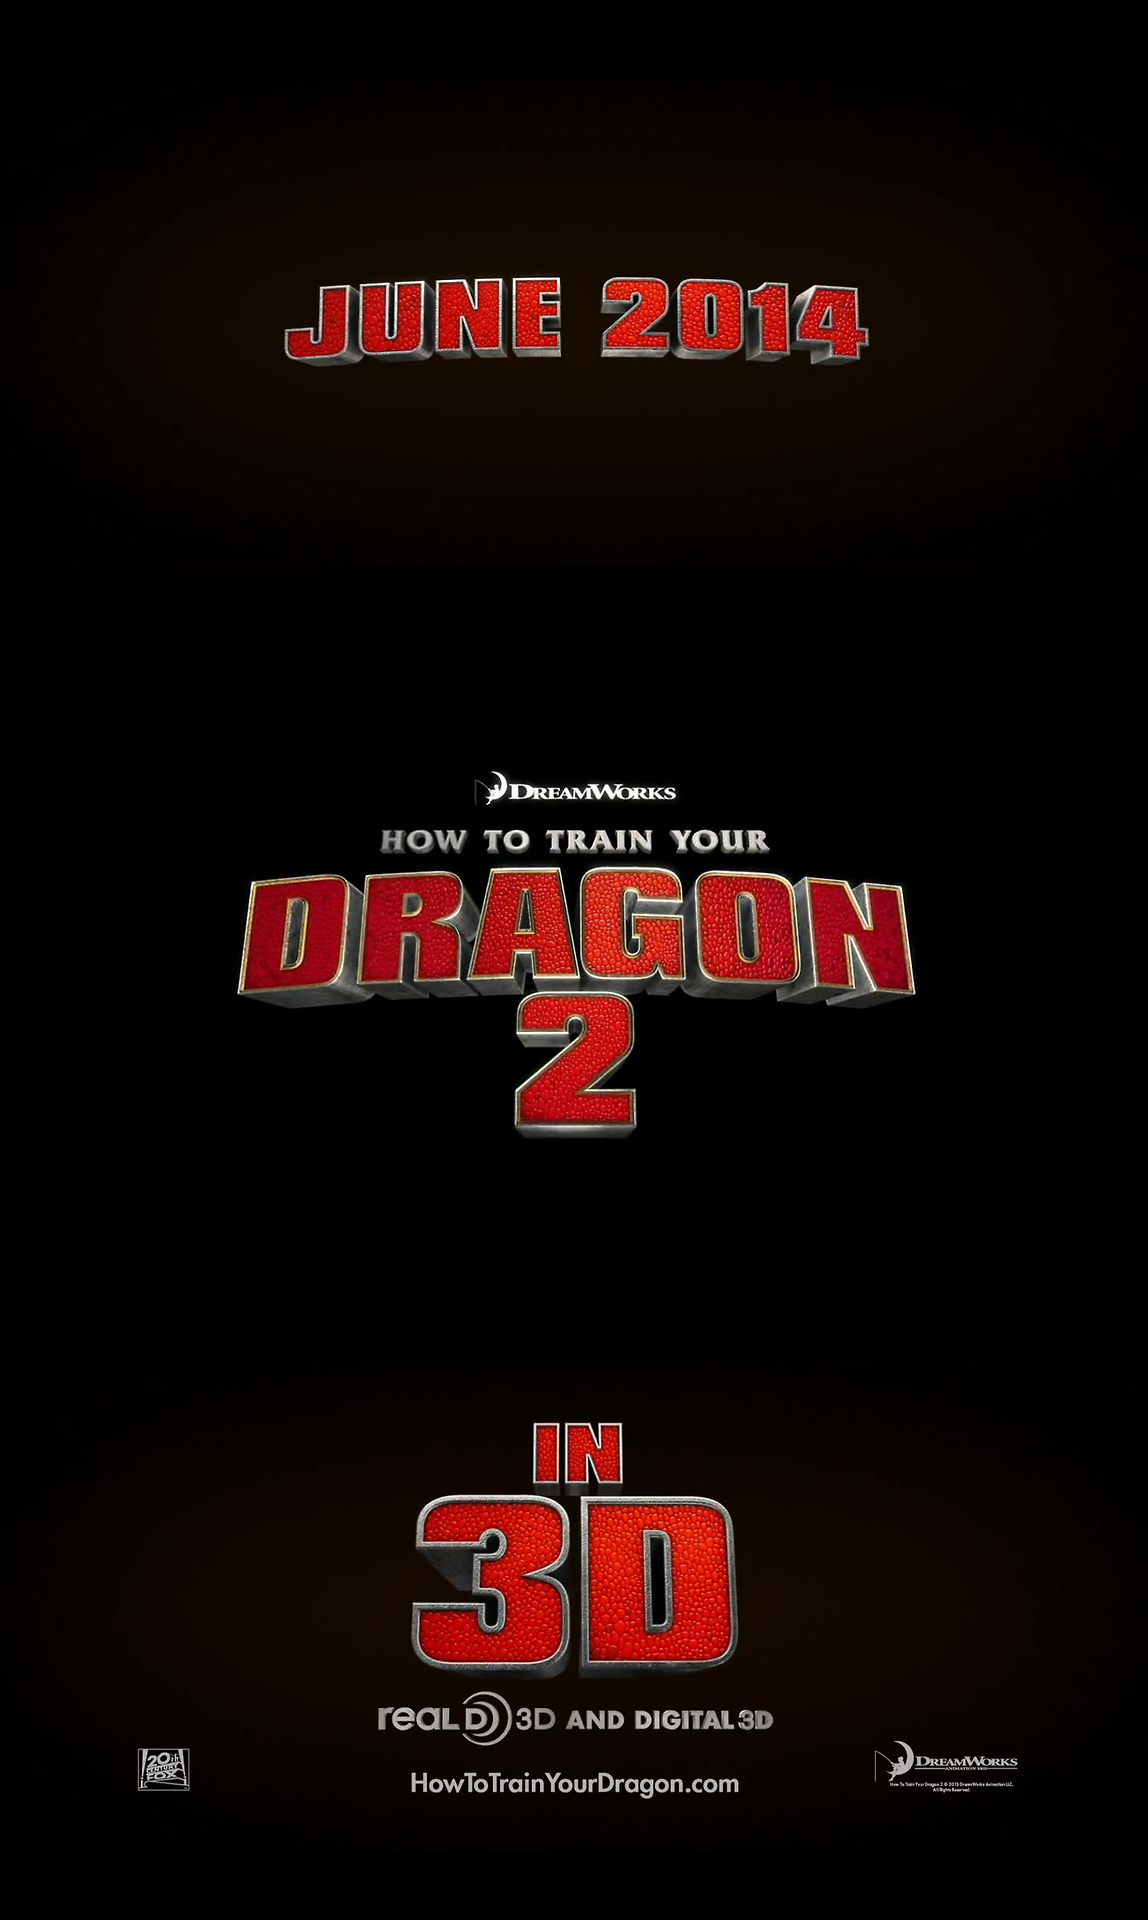 How To Train Your Dragon 2 First Trailer Screencaps - How to Train ...